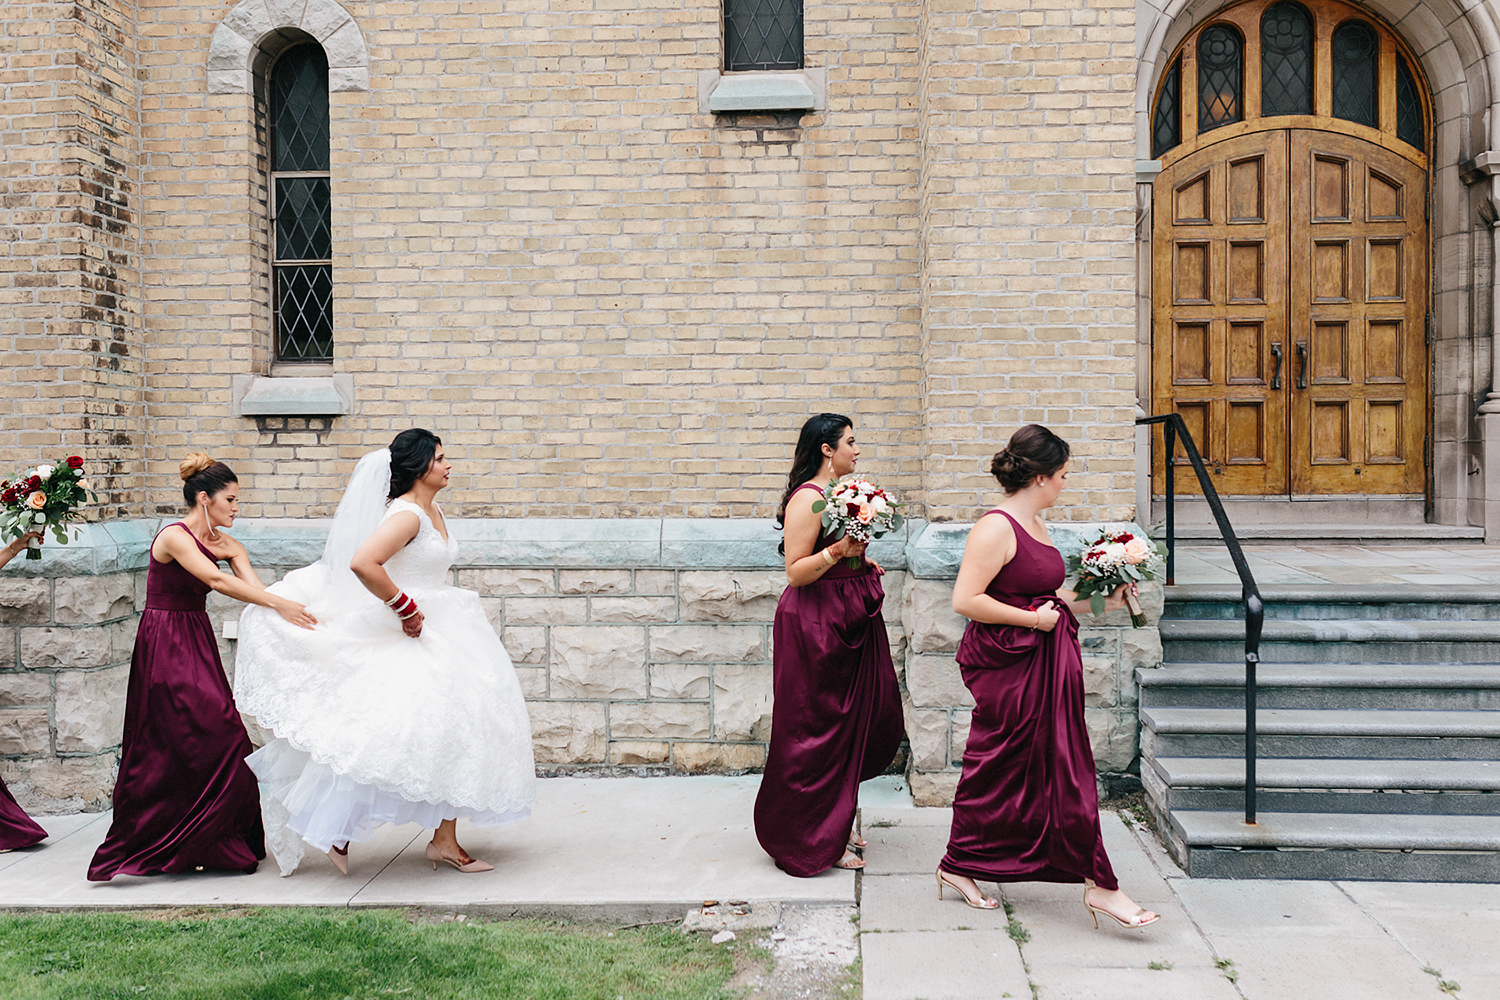 Toronto's-Best-Film-Wedding-Photography-3B-Photography-Brian-Batista-Bettencourt-Multicultural-wedding-day-two-Hamilton-Grimsby-Toronto-Wedding-candid-documentary-portrait-vintage-inspired-church-ceremony-bride-walking-in.jpg